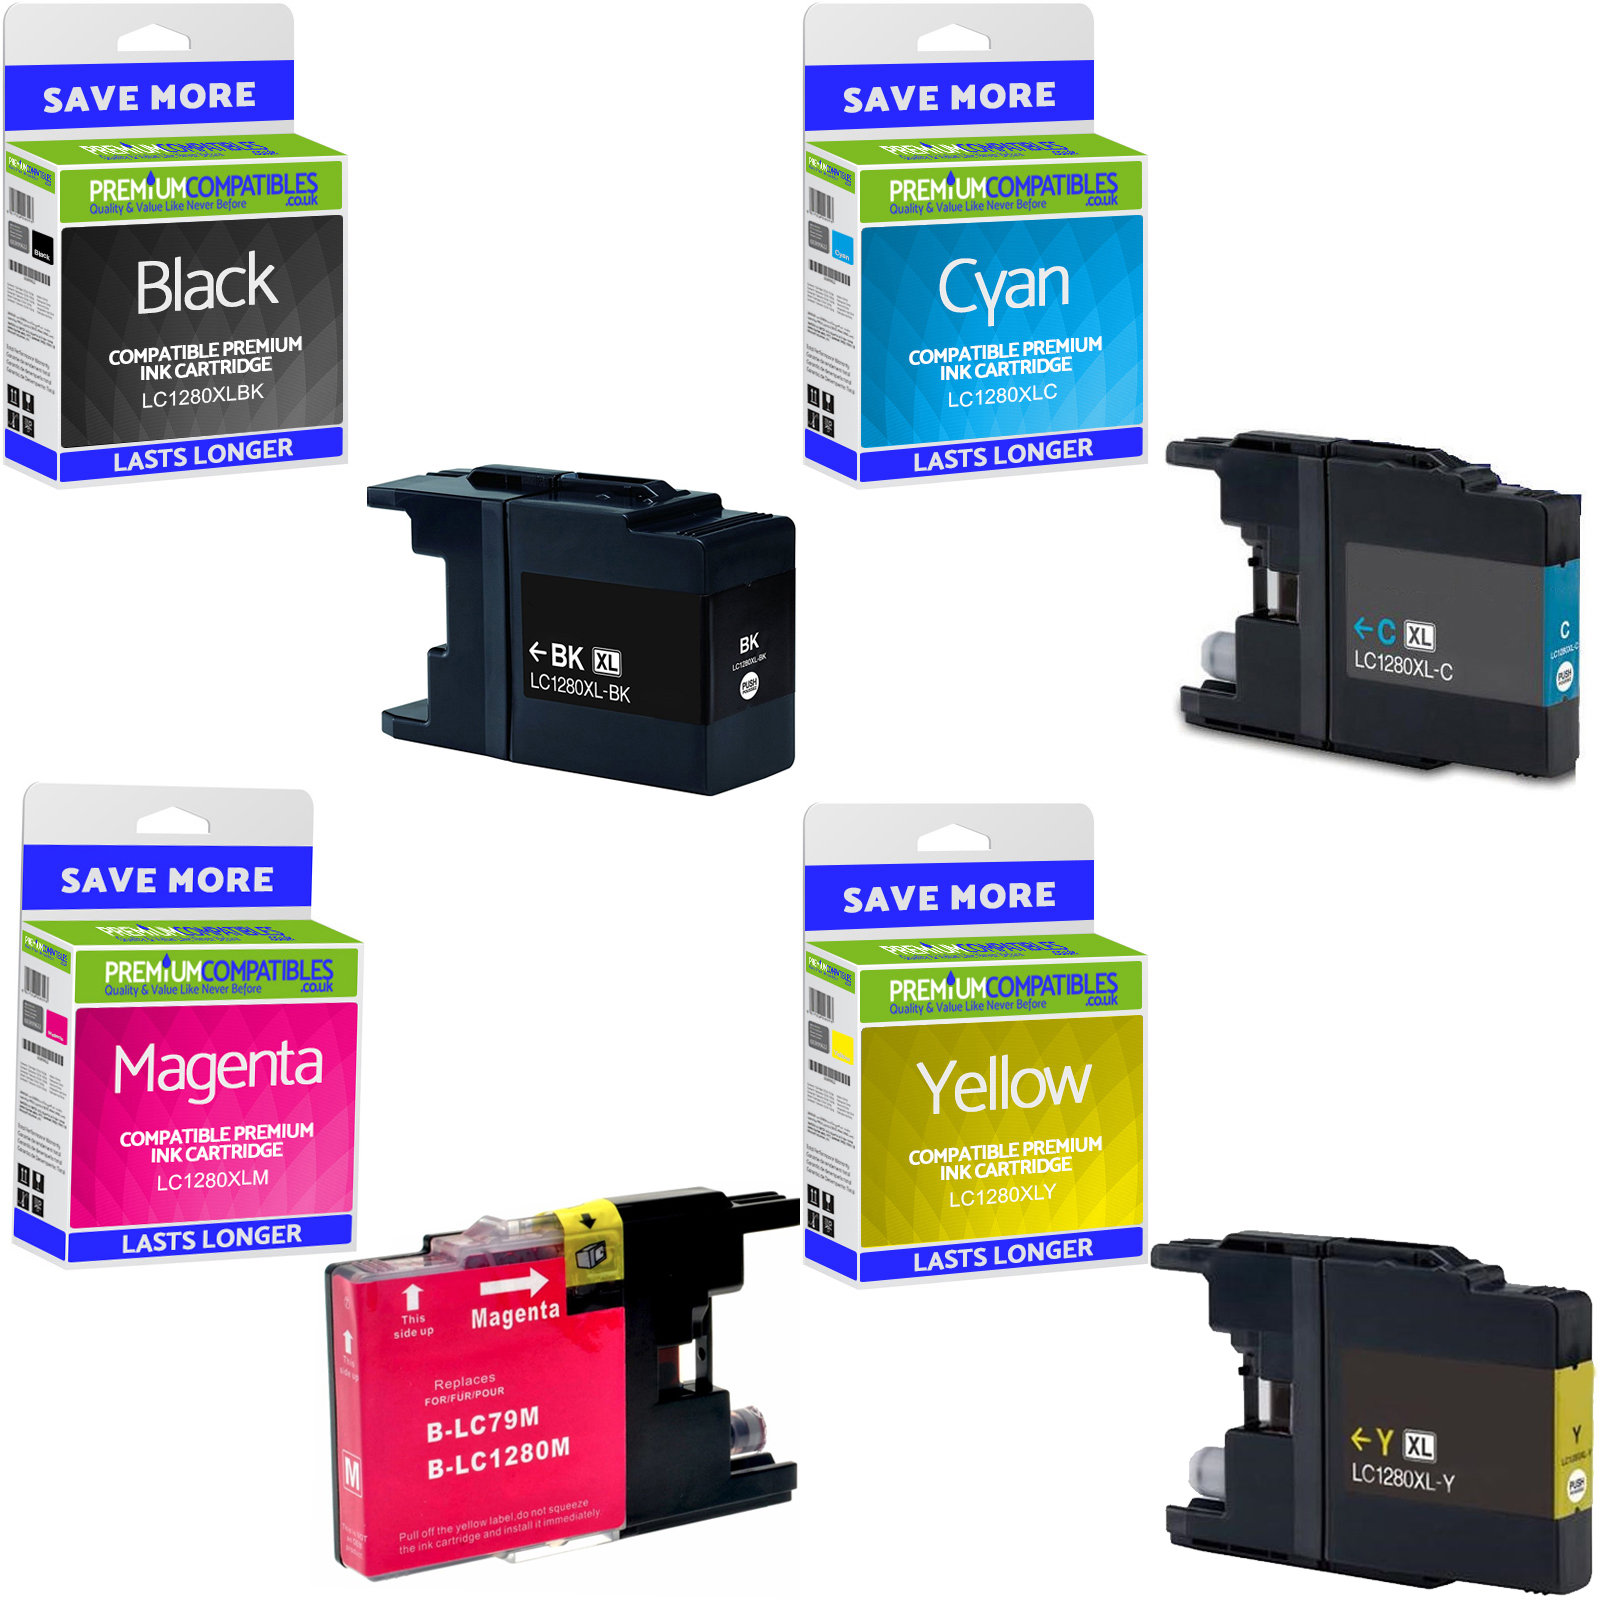 Premium Compatible Brother LC1280XL CMYK Multipack Super High Capacity Ink Cartridges (LC1280XLVALBP)